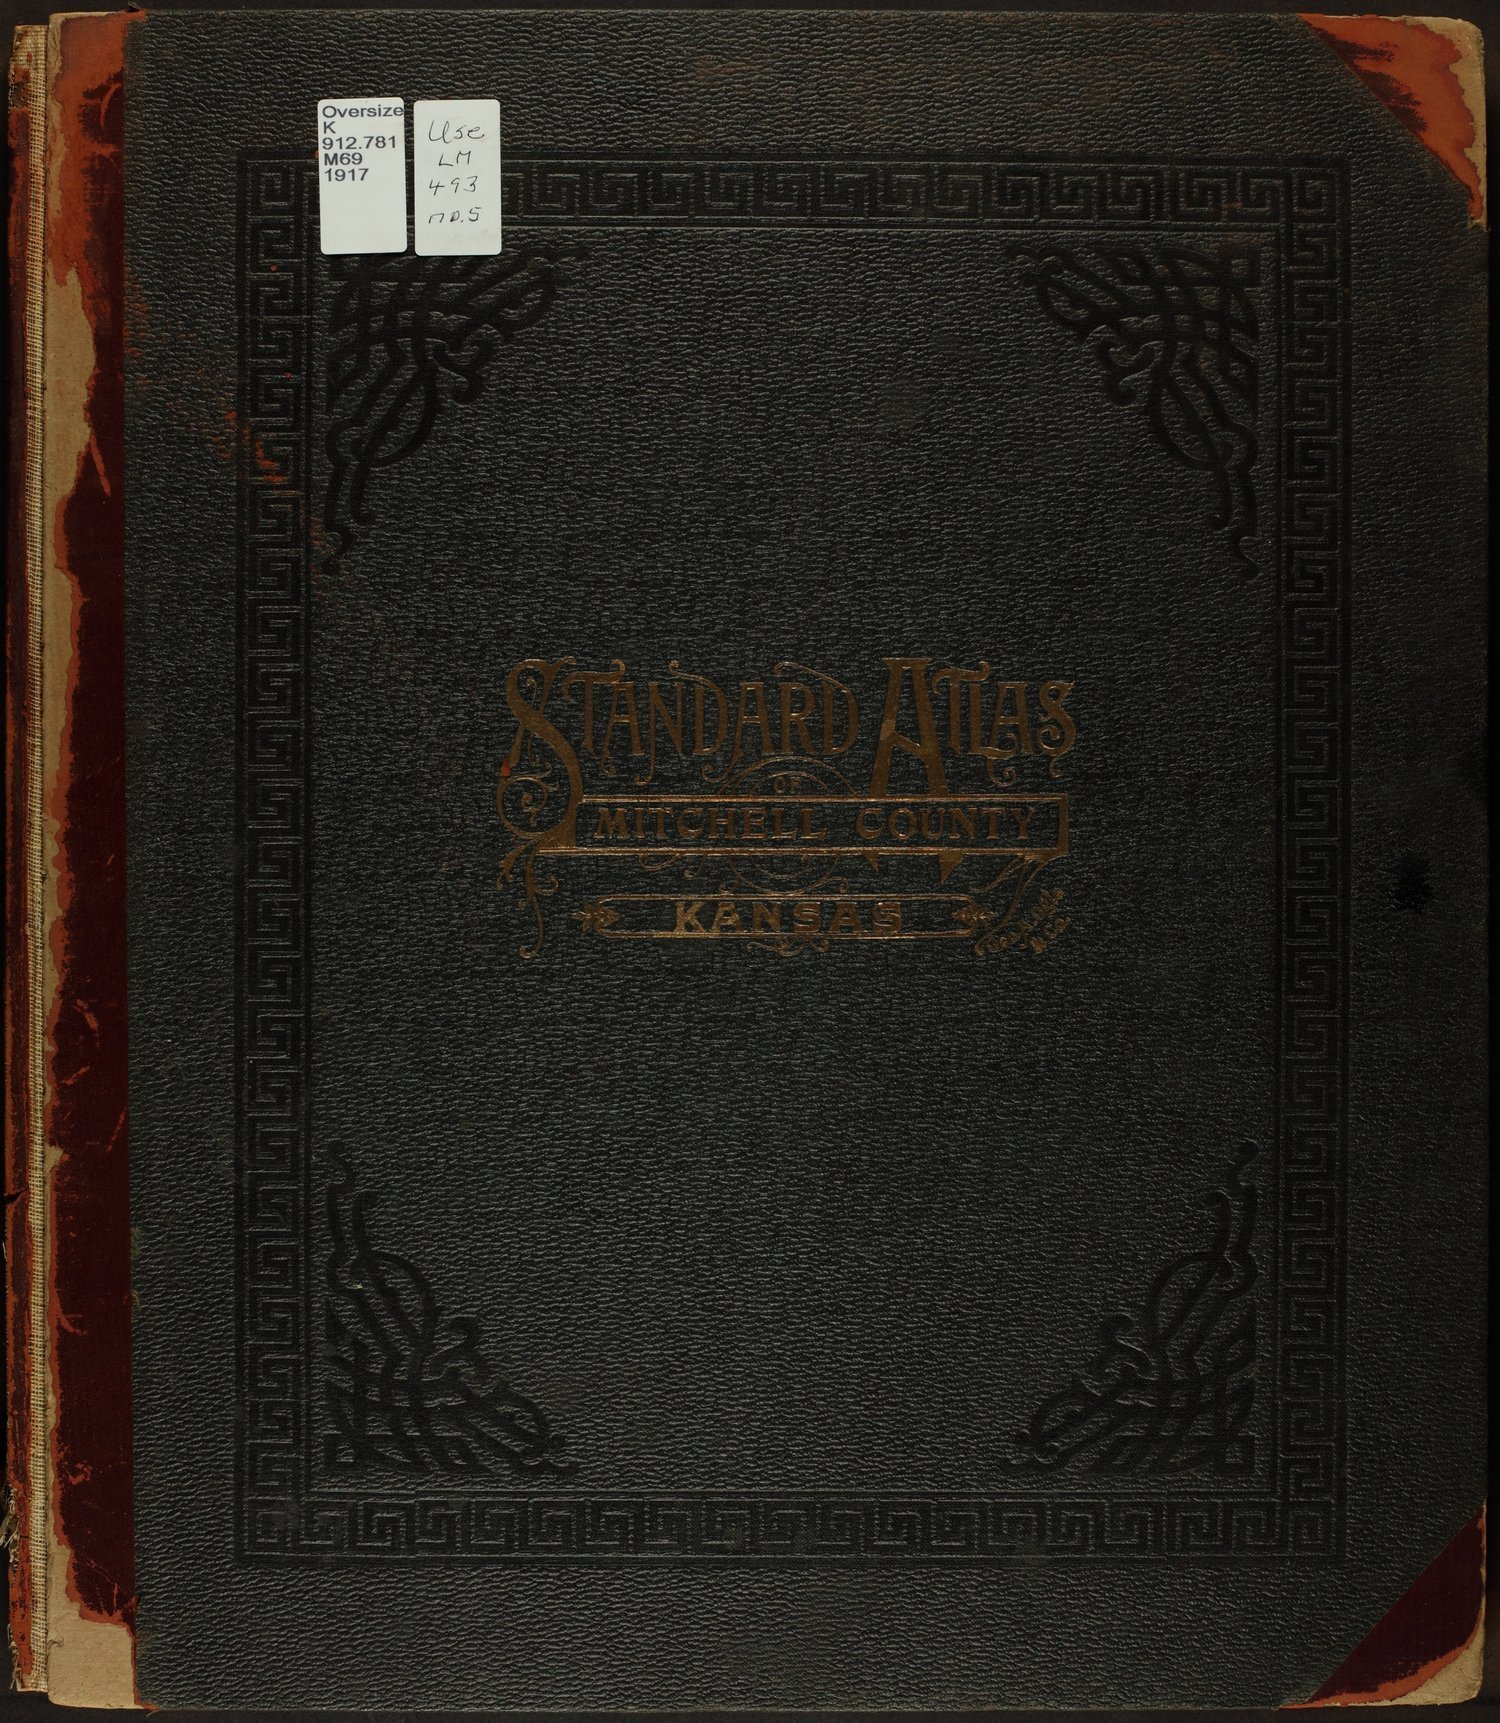 Standard atlas of Mitchell County, Kansas - Front Cover